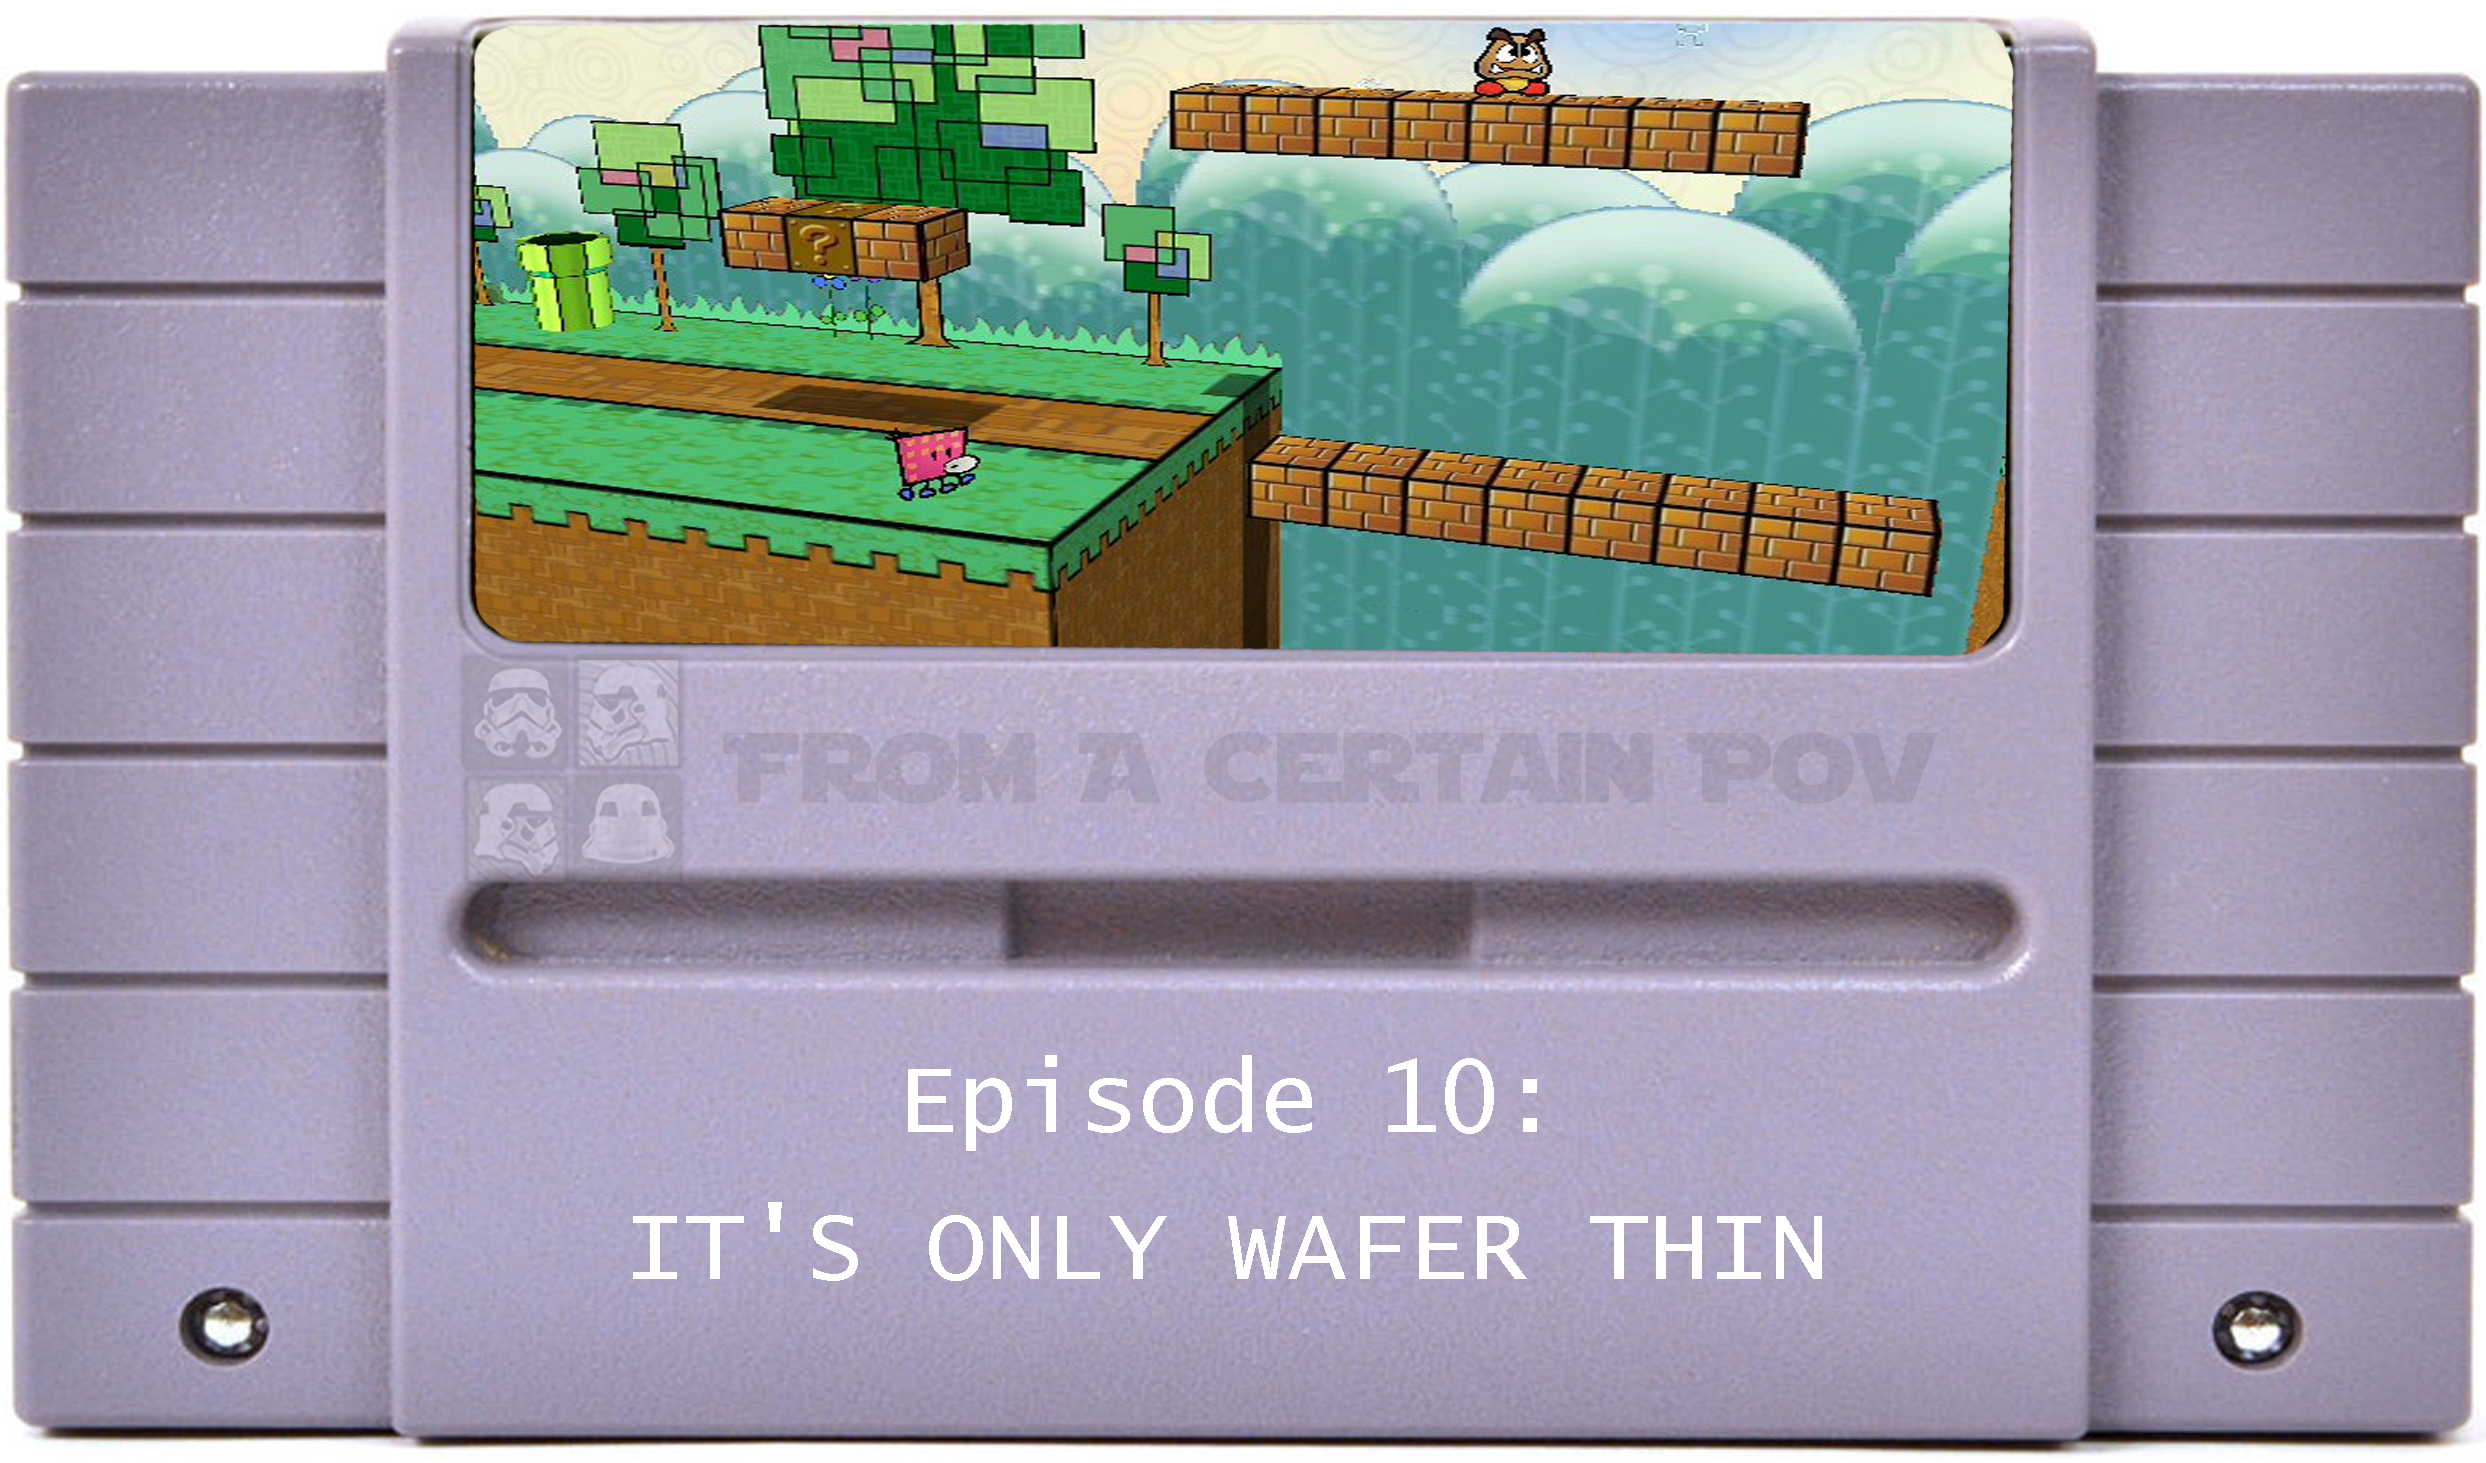 10 - IT'S ONLY WAFER THIN.jpg